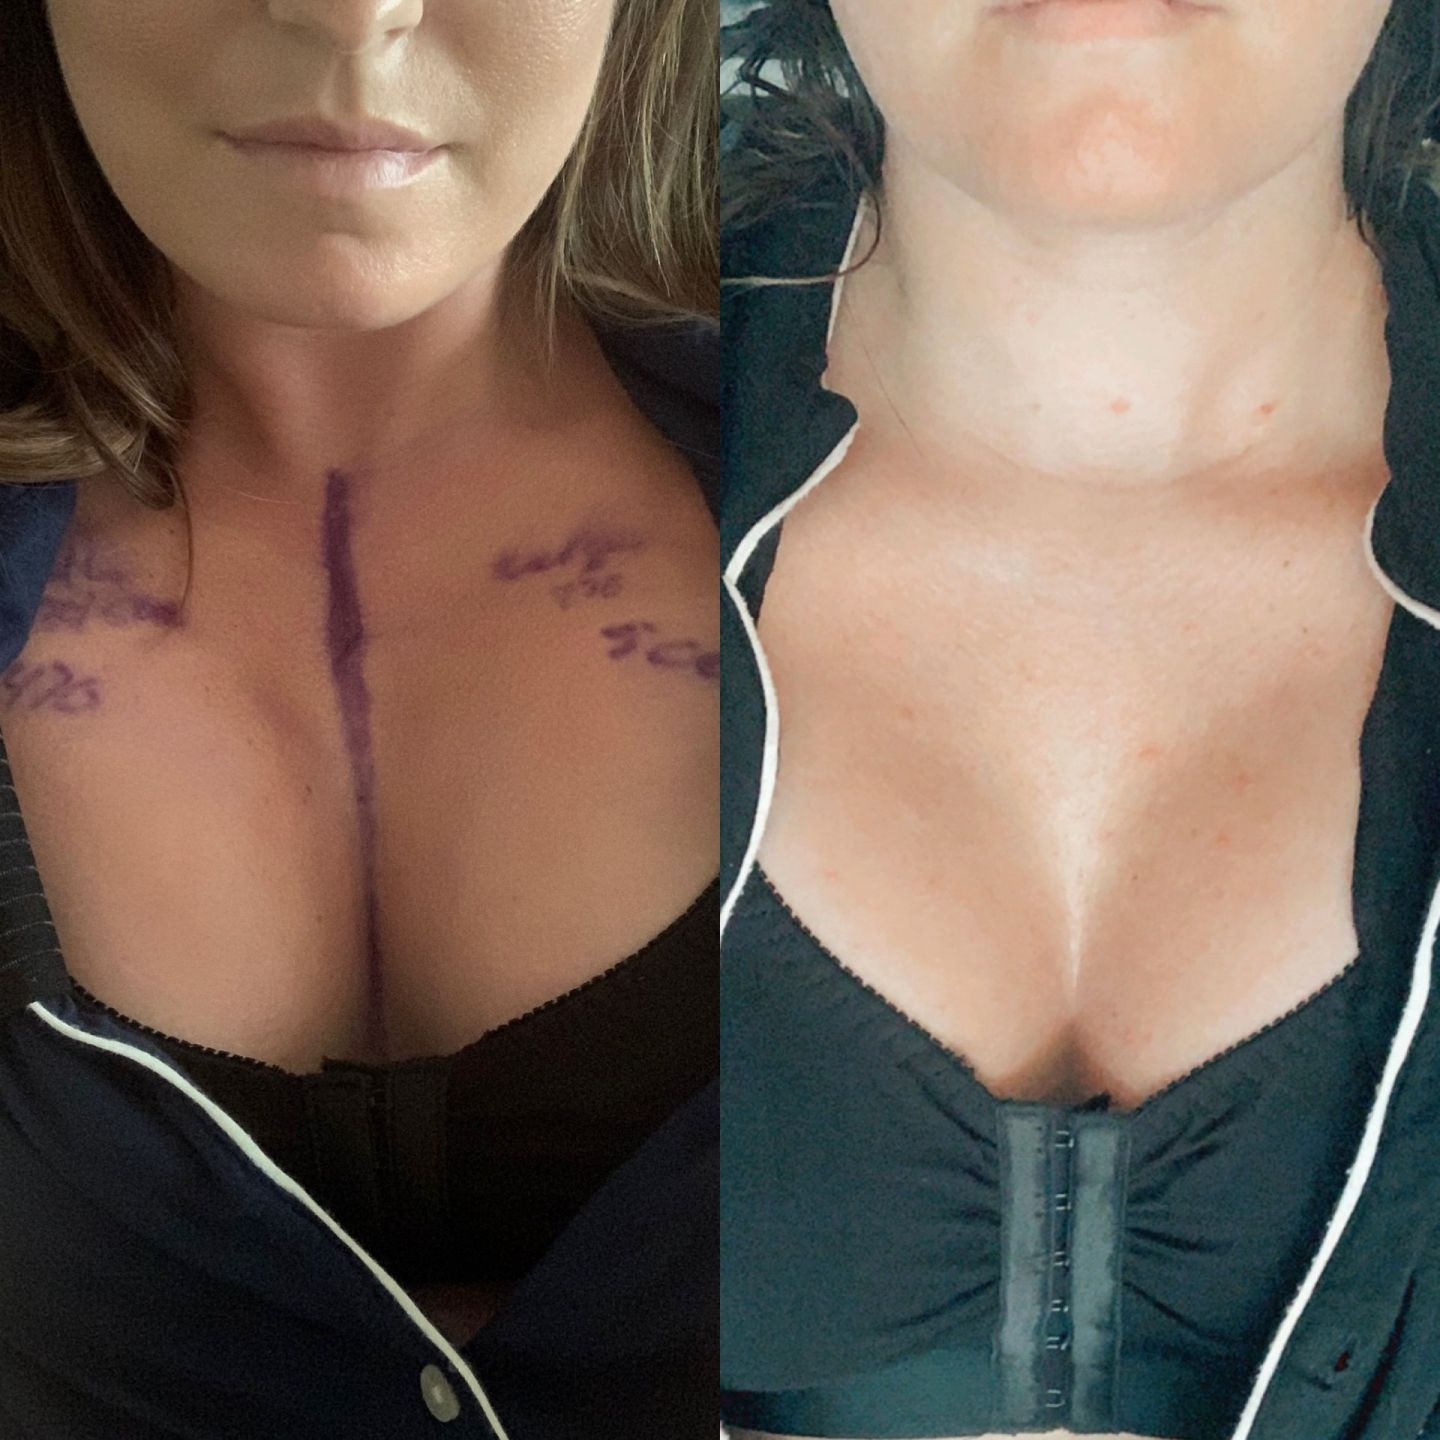 breast augmentation surgery tips, boob job tips and recovery tips after boob job.